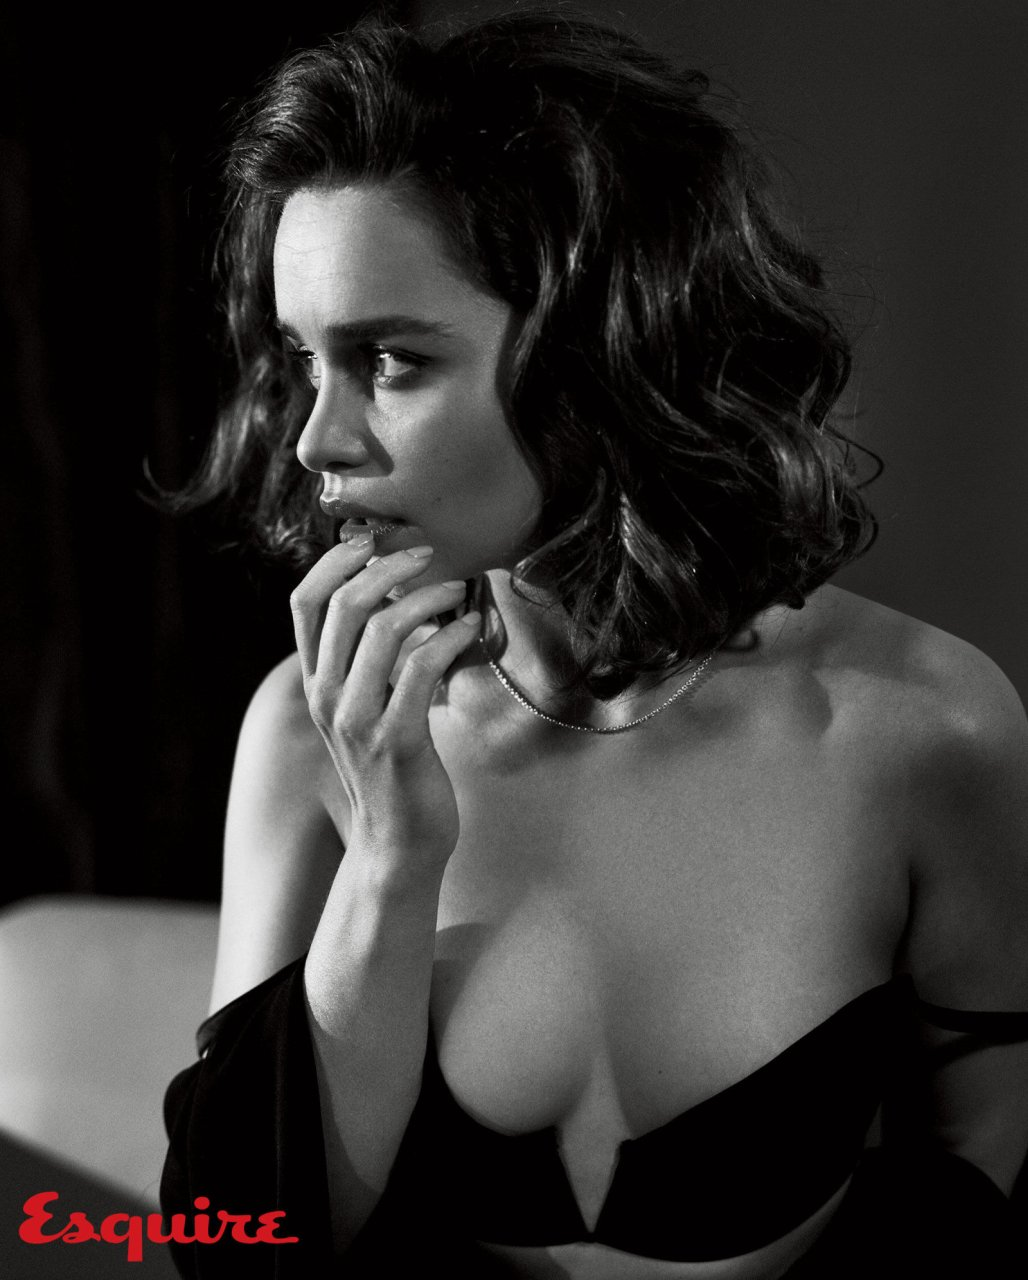 image Emilia clarke sexy for esquire